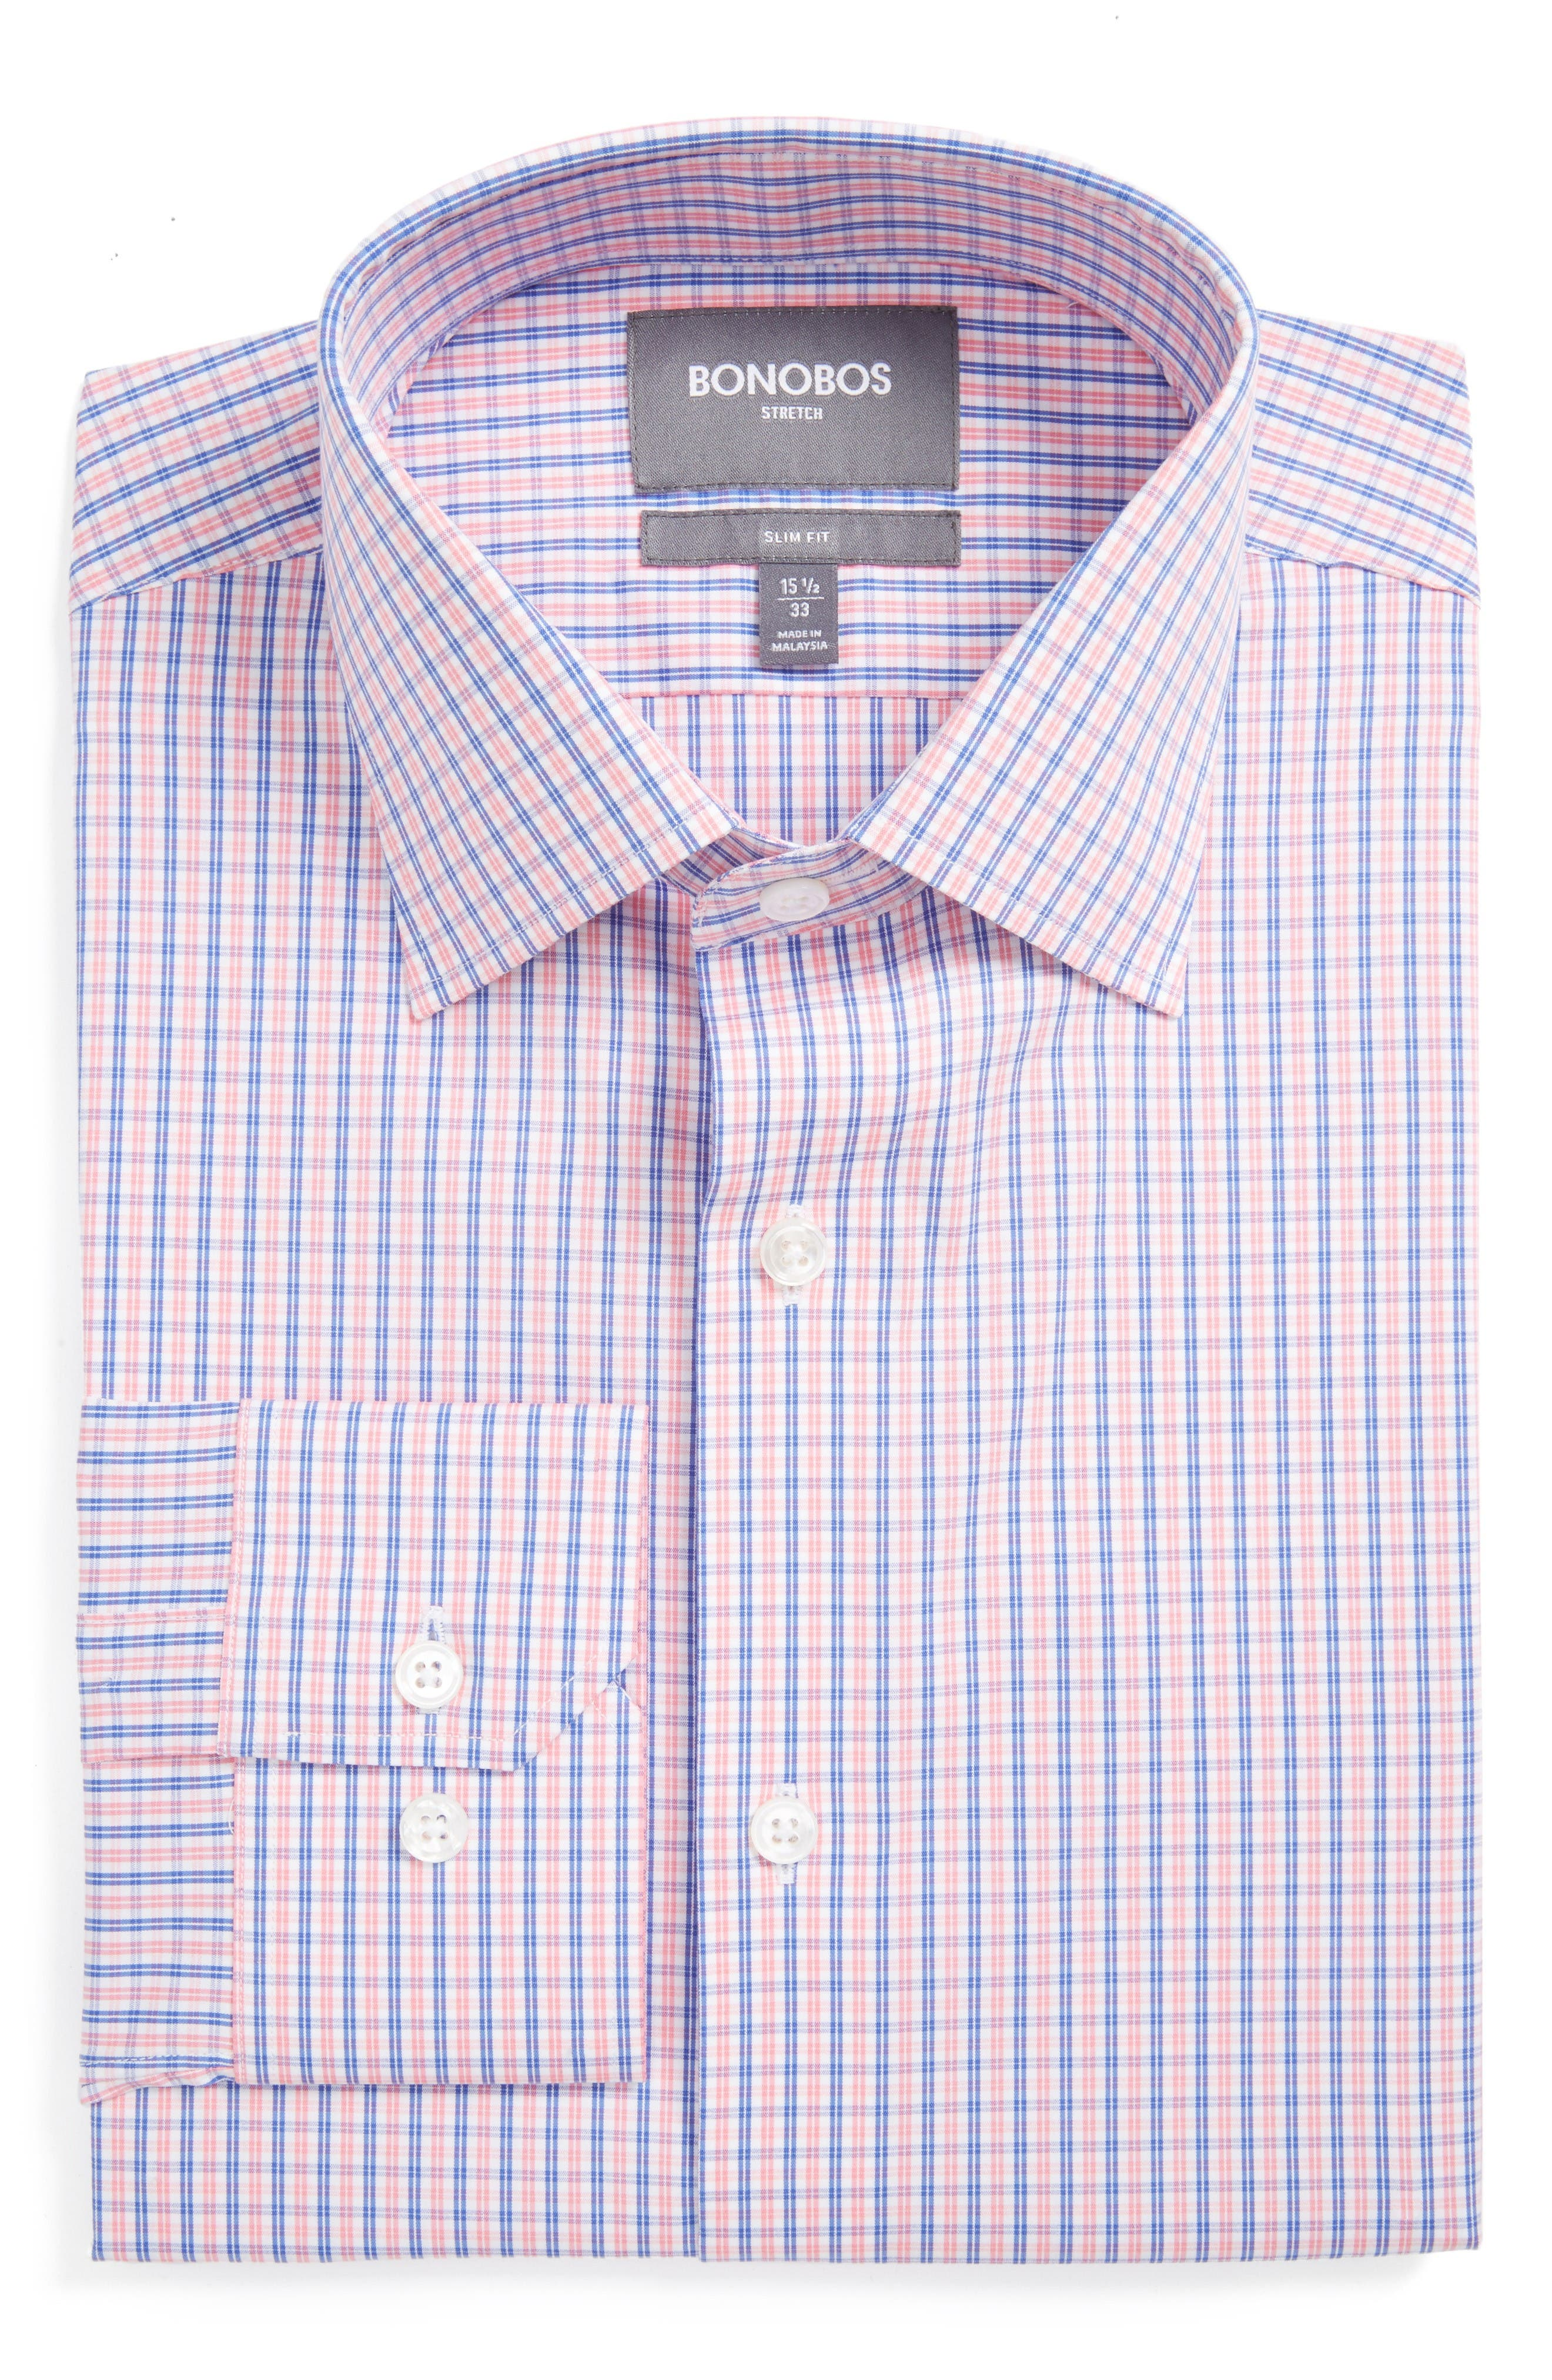 Jetsetter Slim Fit Check Stretch Dress Shirt,                             Main thumbnail 1, color,                             Pink Wright